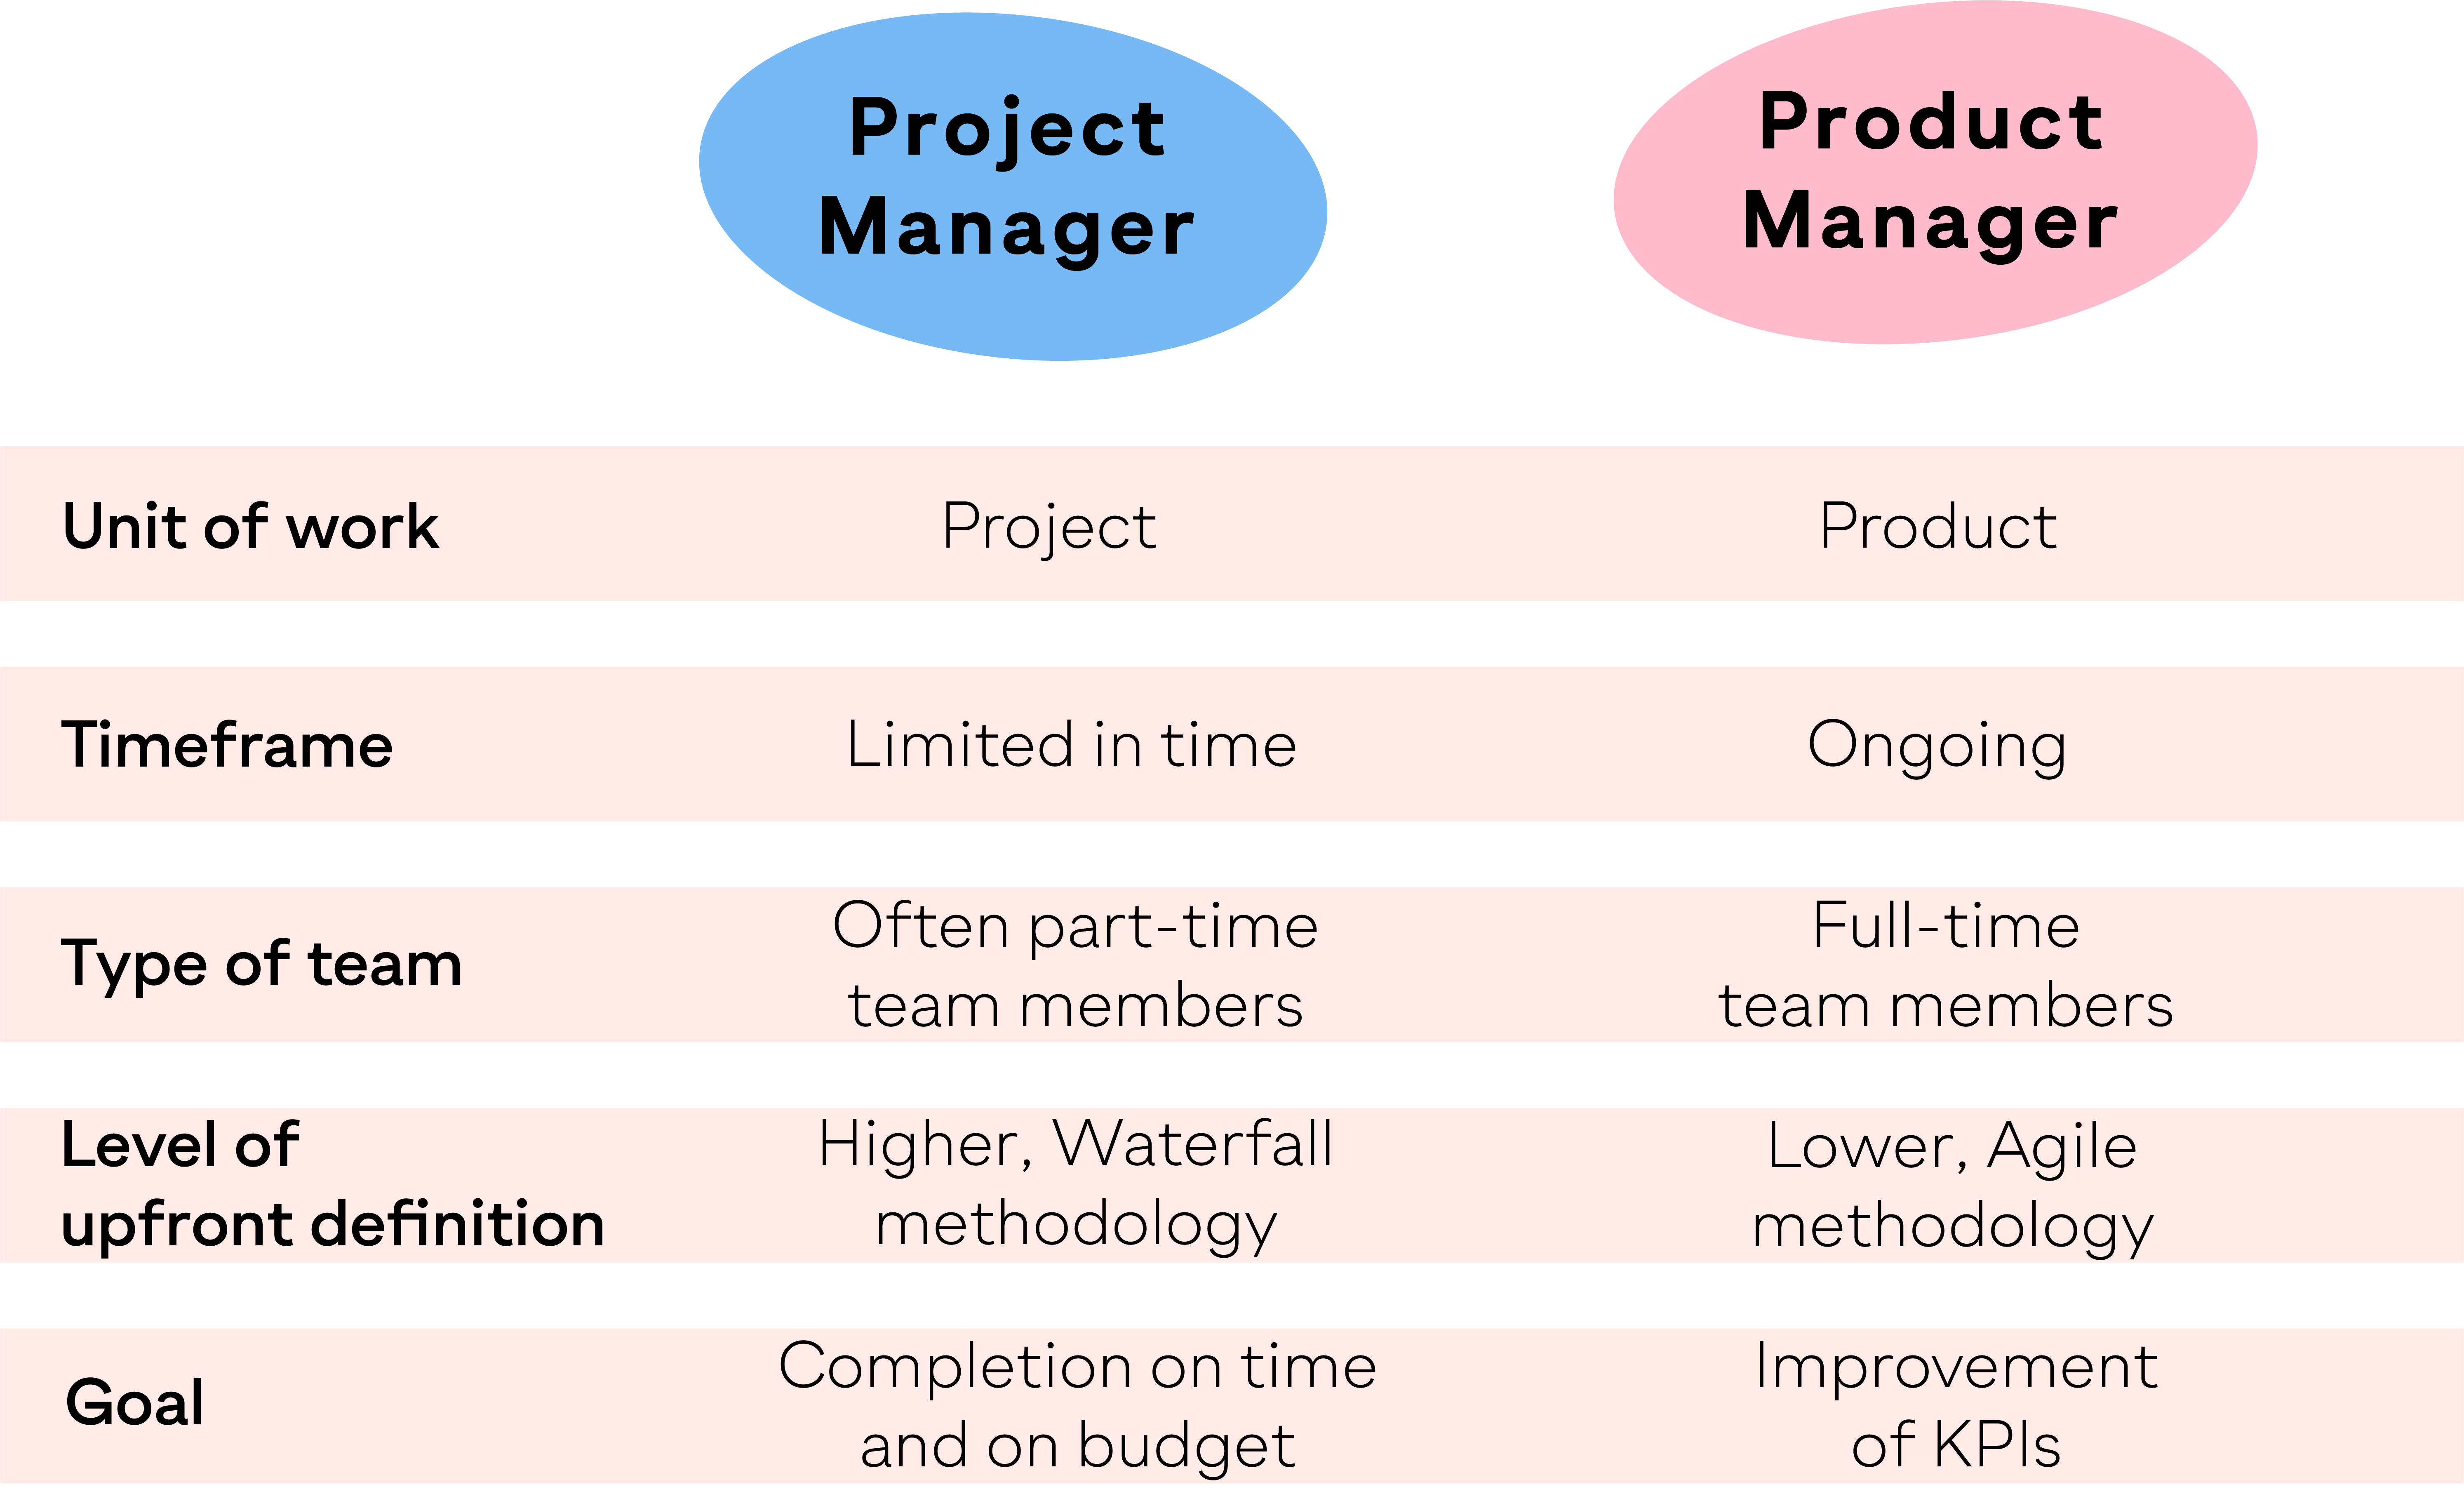 Table showing the difference between a product manager and project manager.